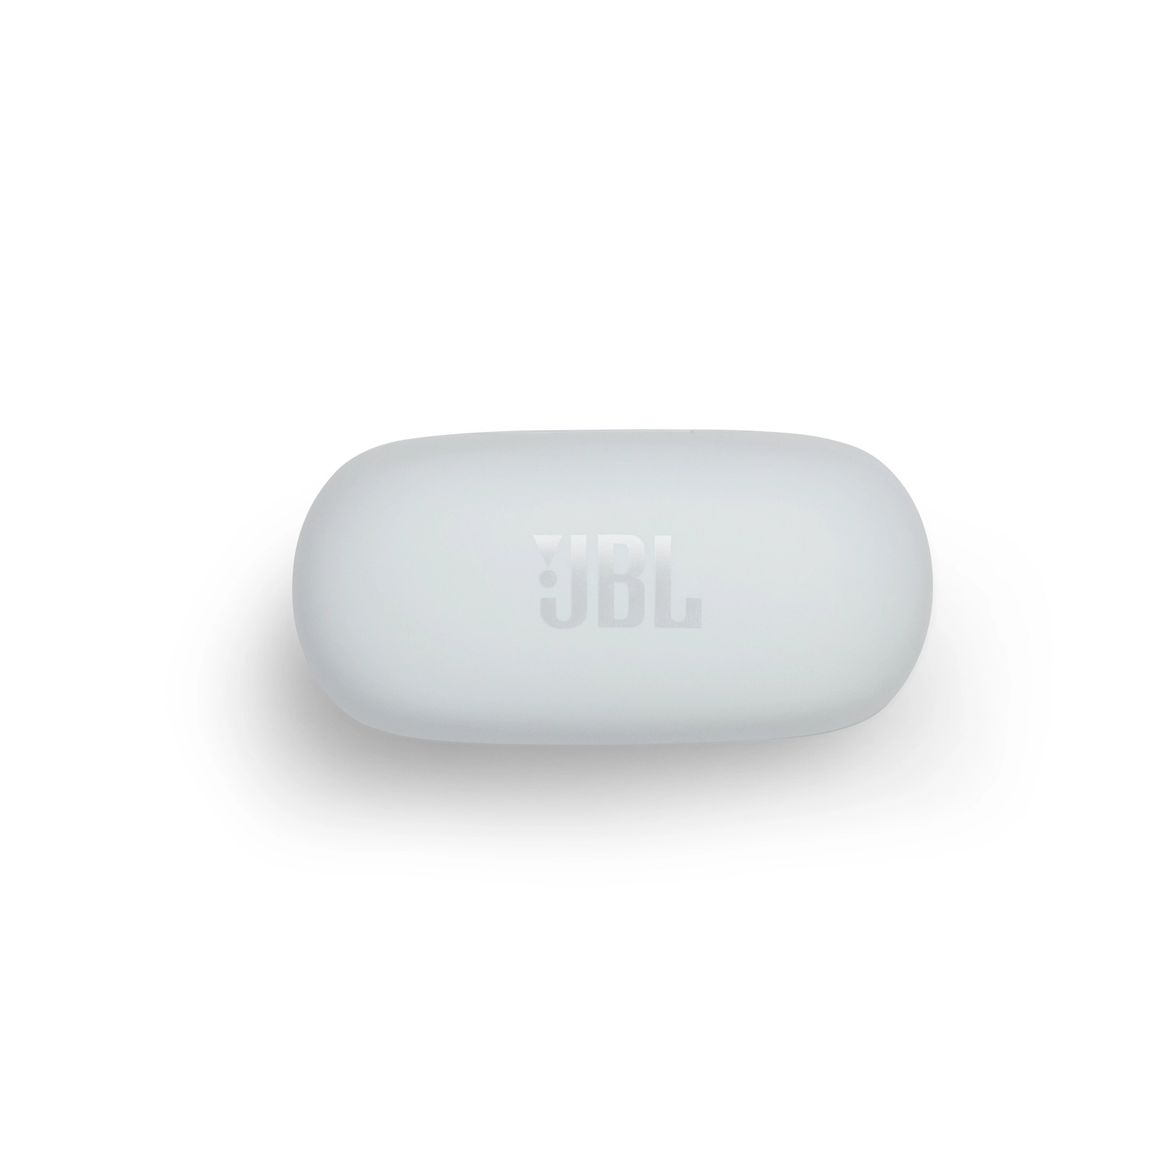 JBL_LIVE_FREE_NC TWS_Product image_Case Top_White